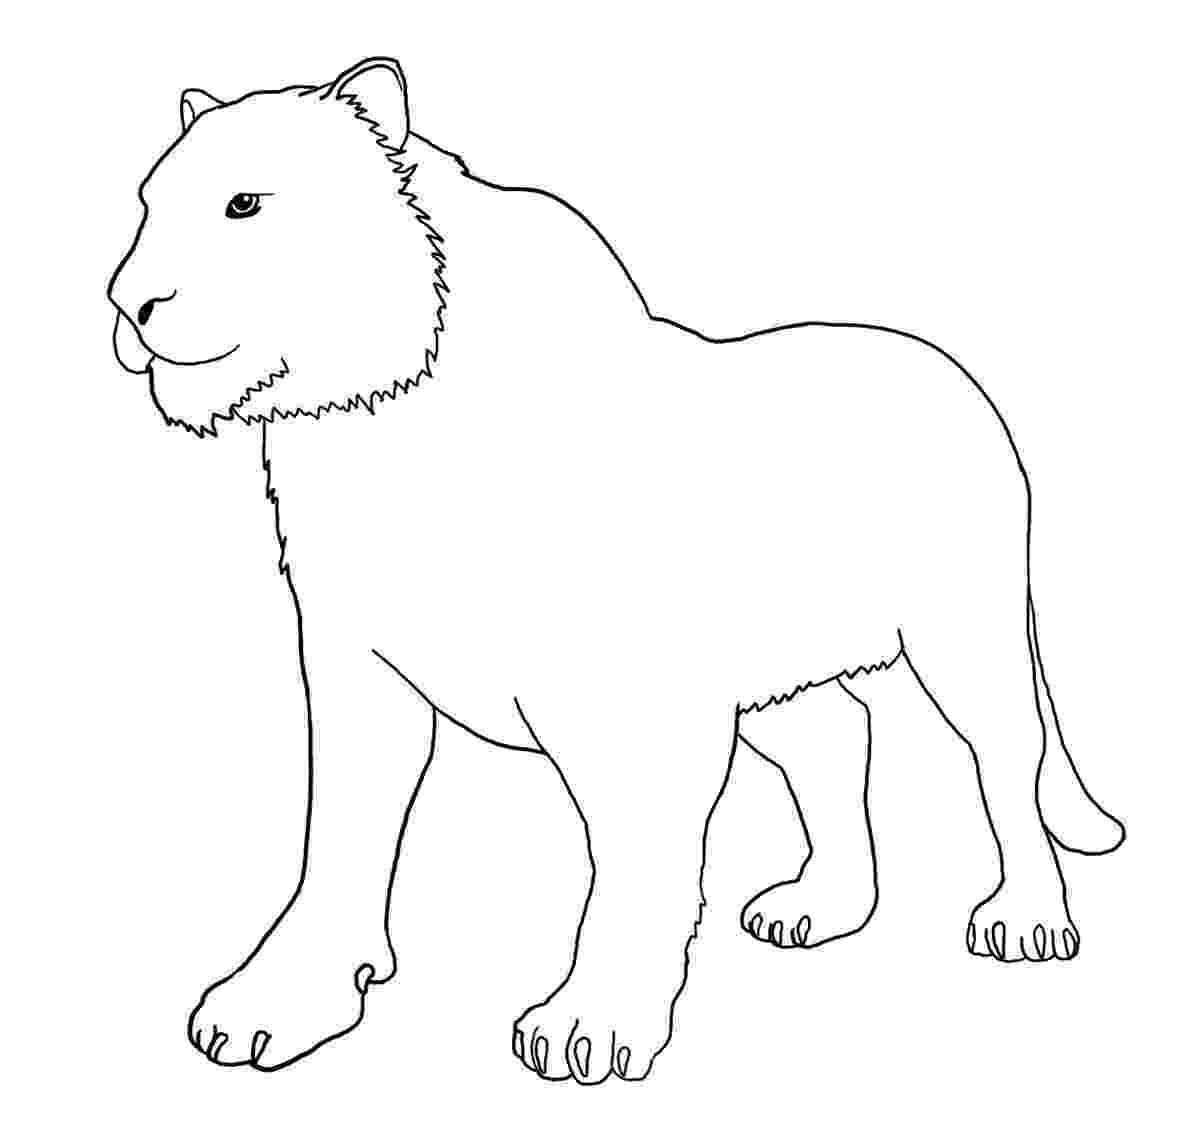 tiger without stripes coloring page tasmanian tiger wihtout stripes coloring page free stripes page tiger coloring without